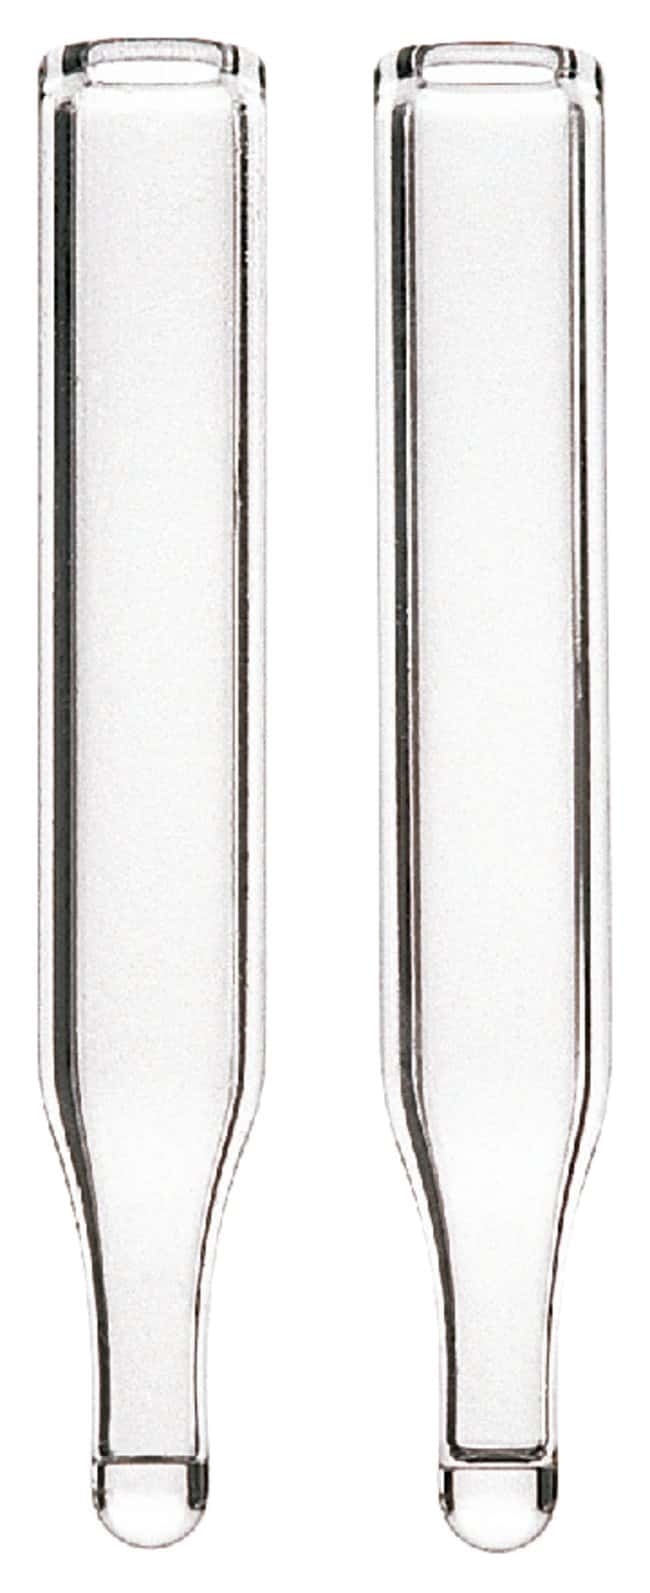 Thermo Scientific National Microvolume Inserts for 8 x 40mm Shell Vials